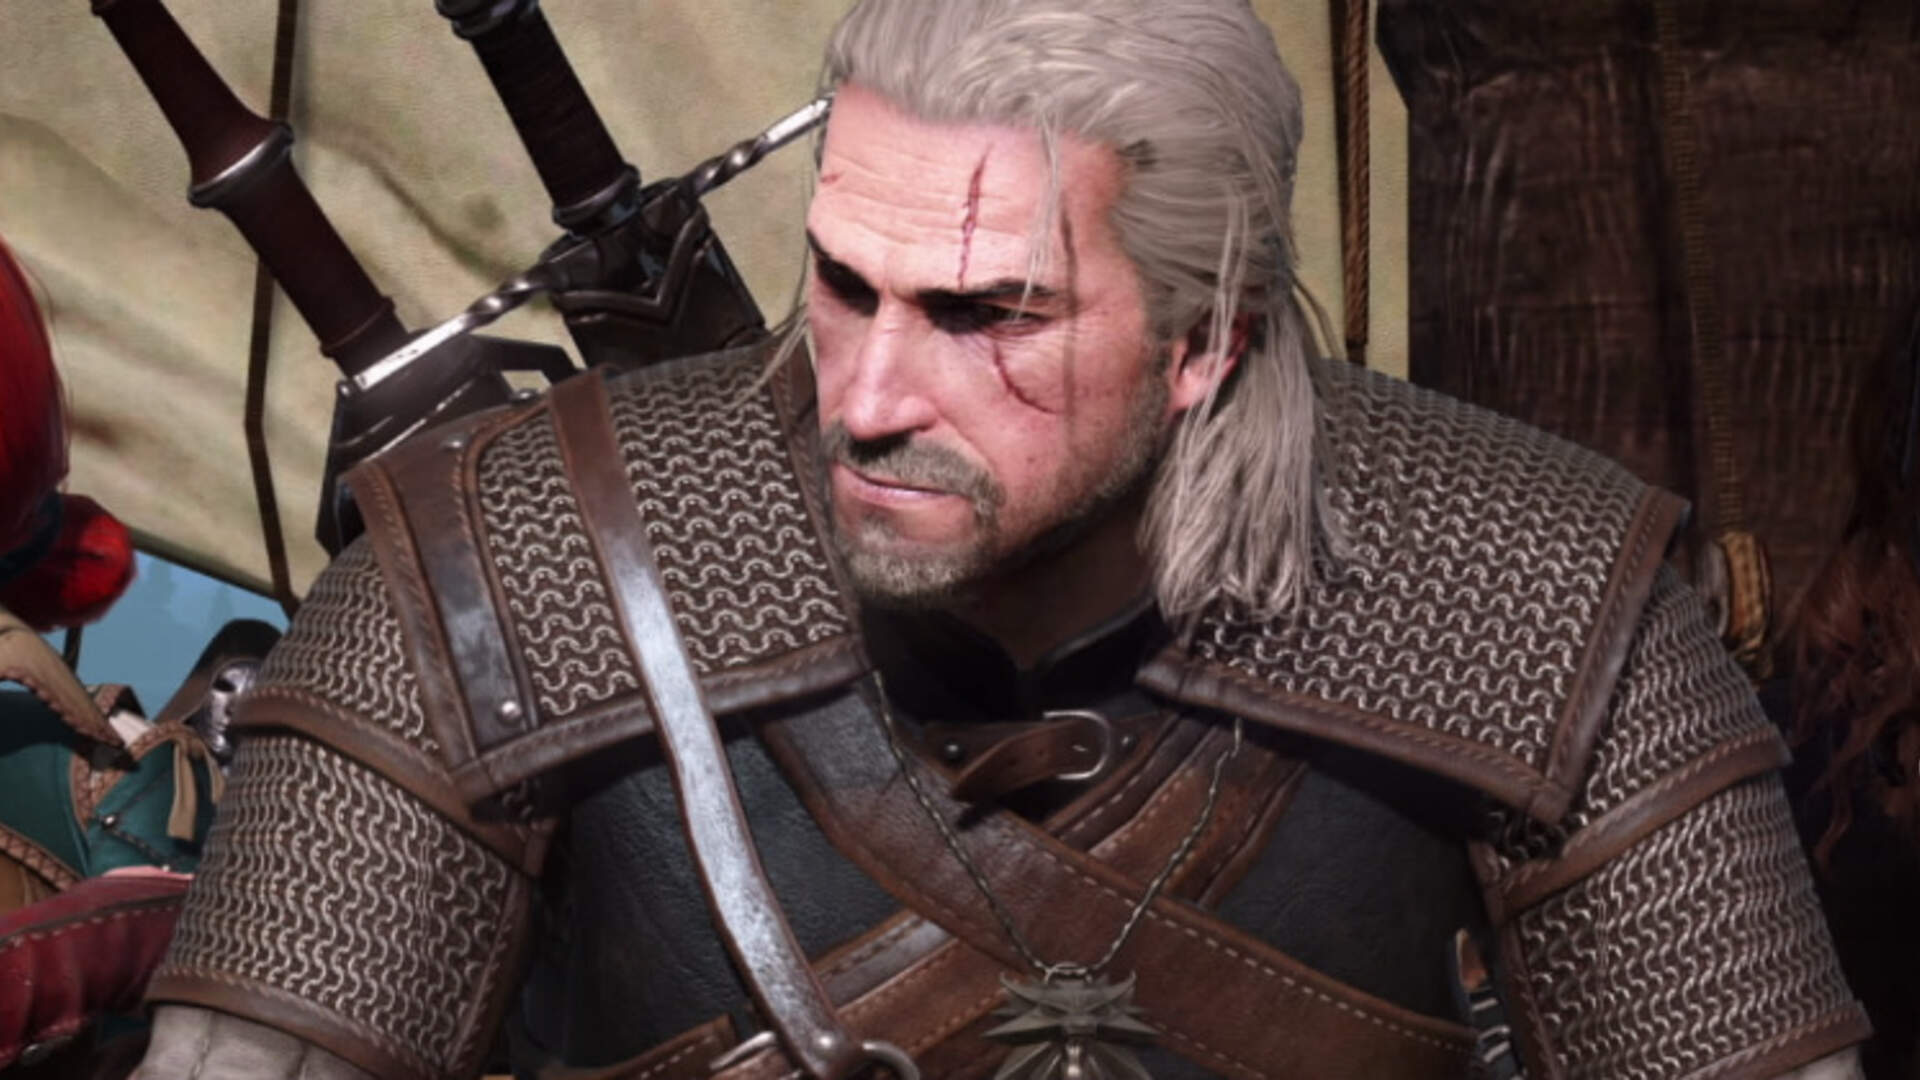 On The Witcher 3, Race, and Fantasy Homages